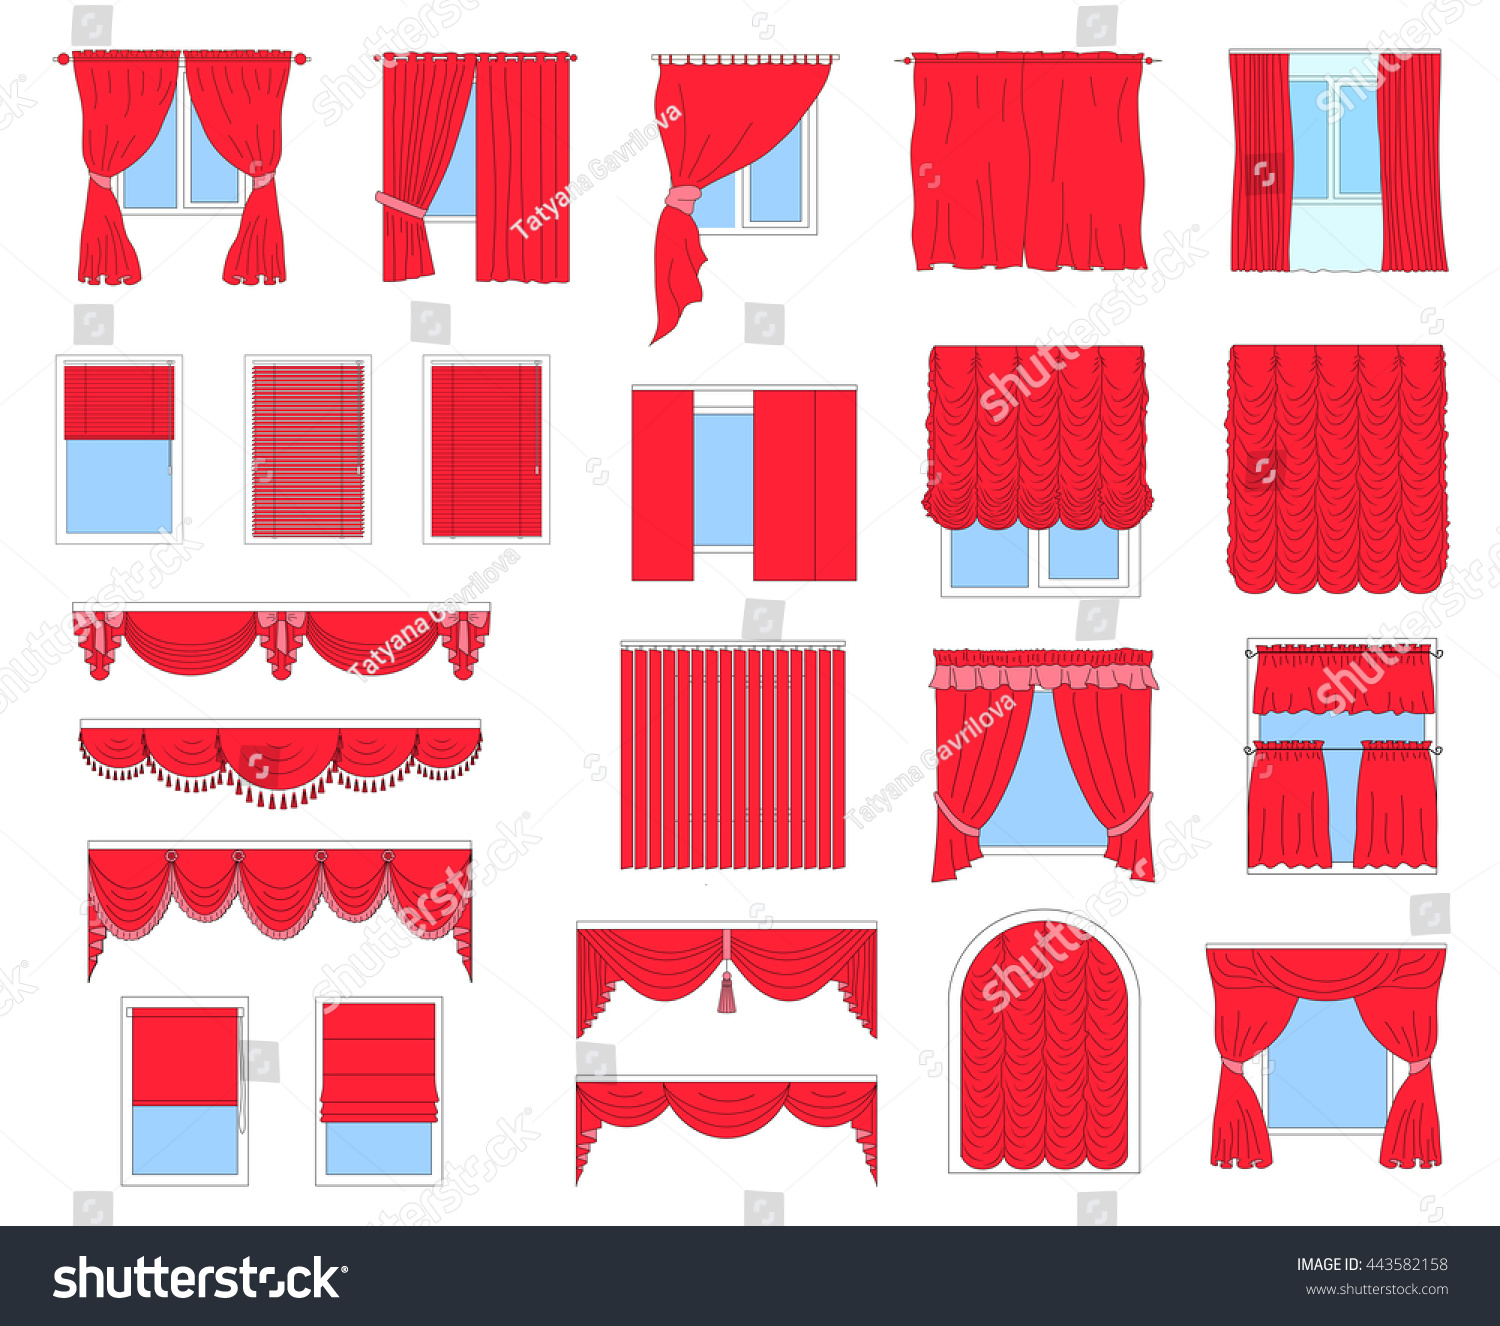 Collection of different types of curtains classic horizontal and vertical blinds Roman draped tulle Big set of curtains on the windows isolated on white background Stock Vector illustration